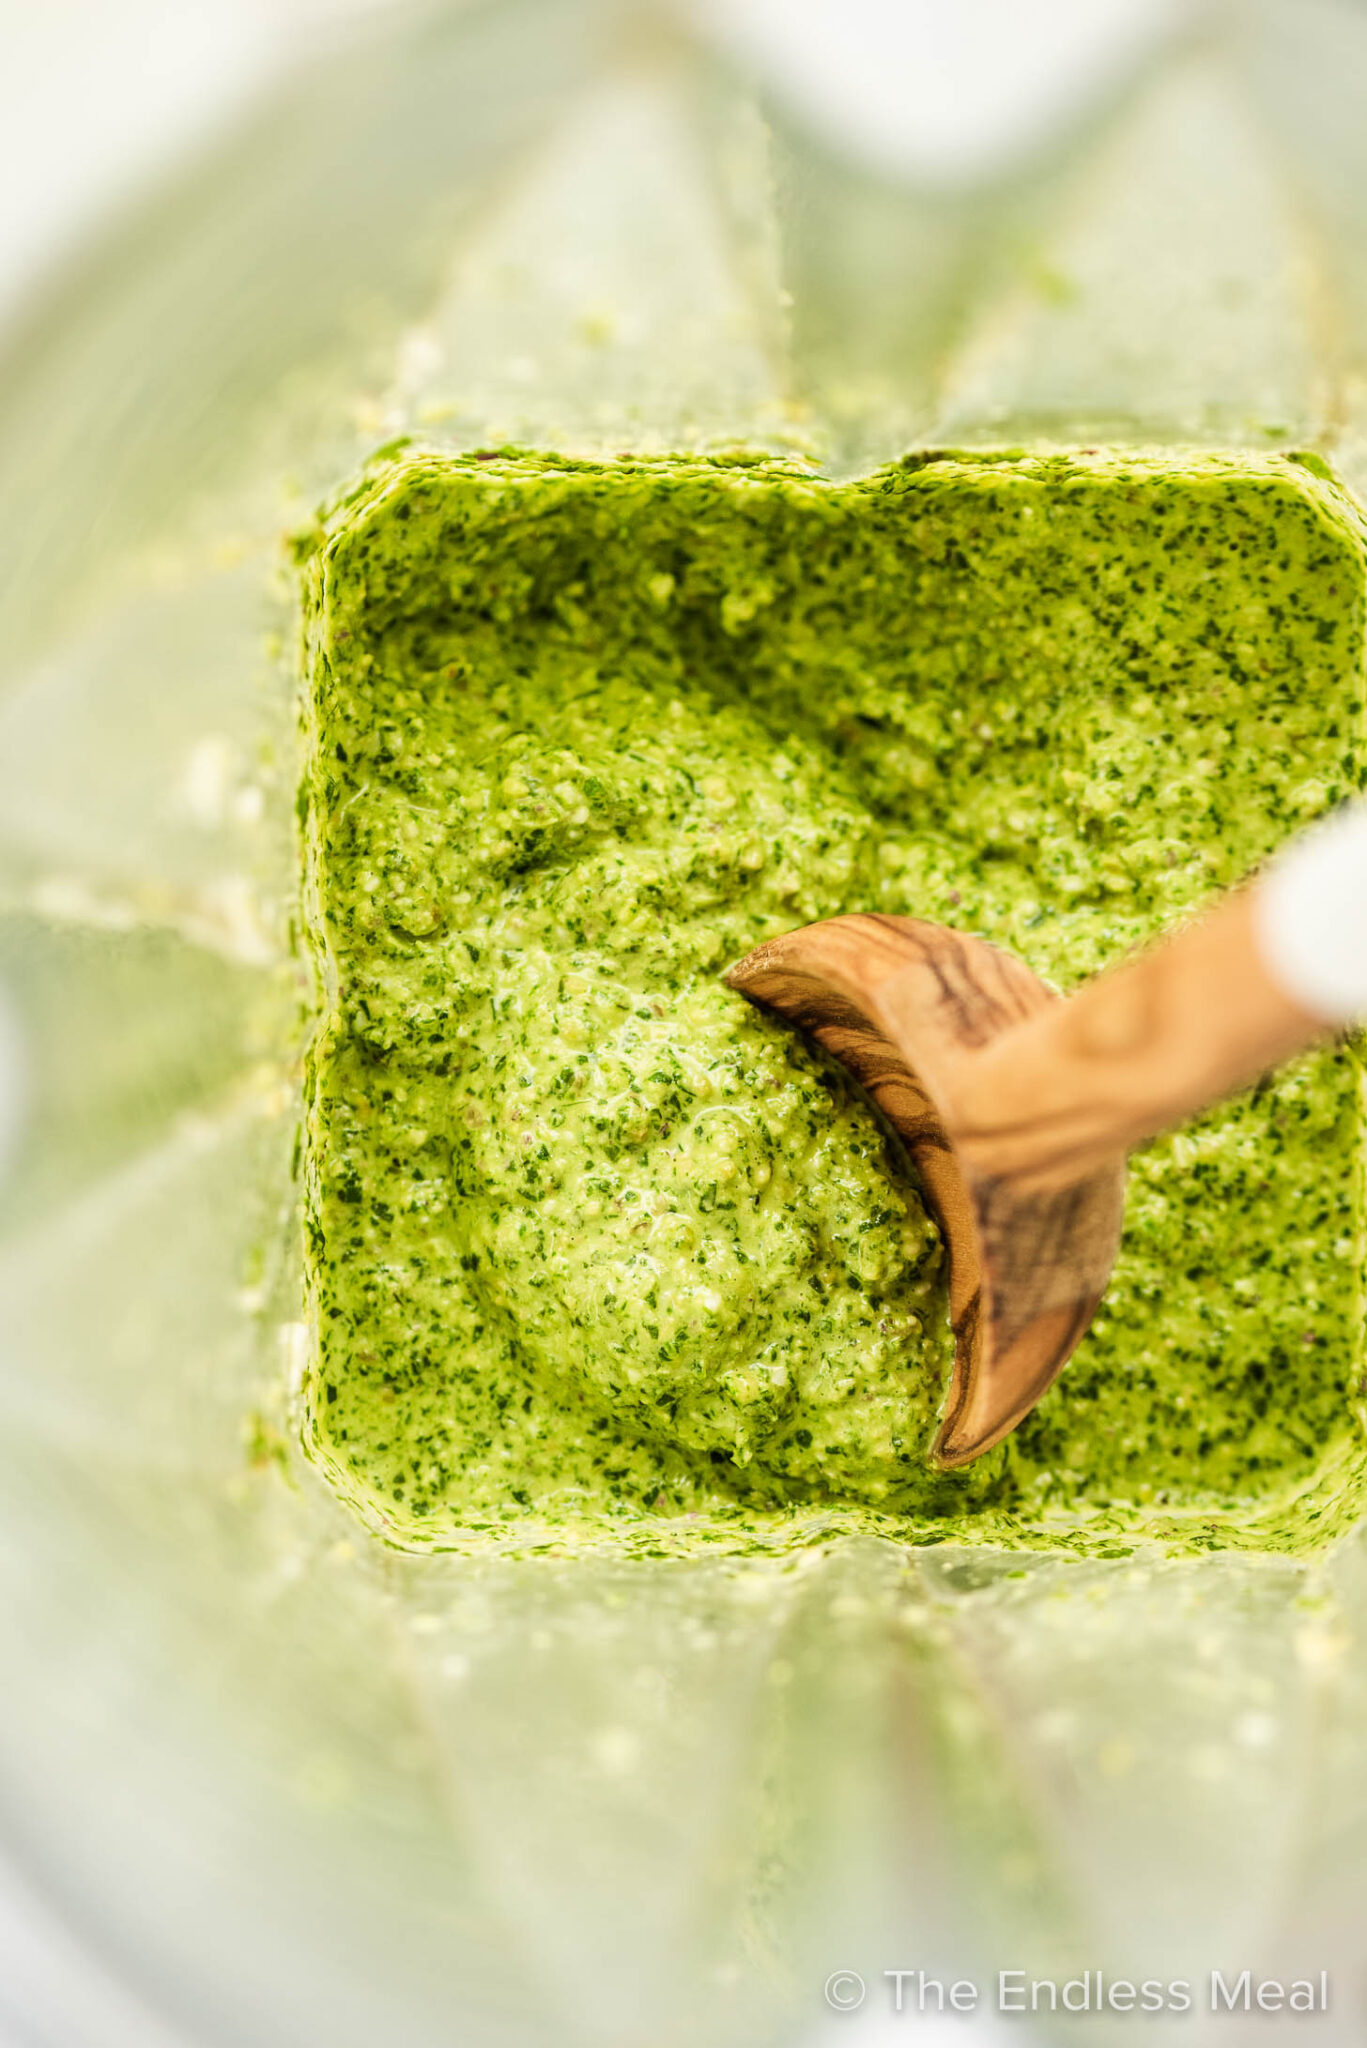 Mint pesto in a blender with a wooden spoon.